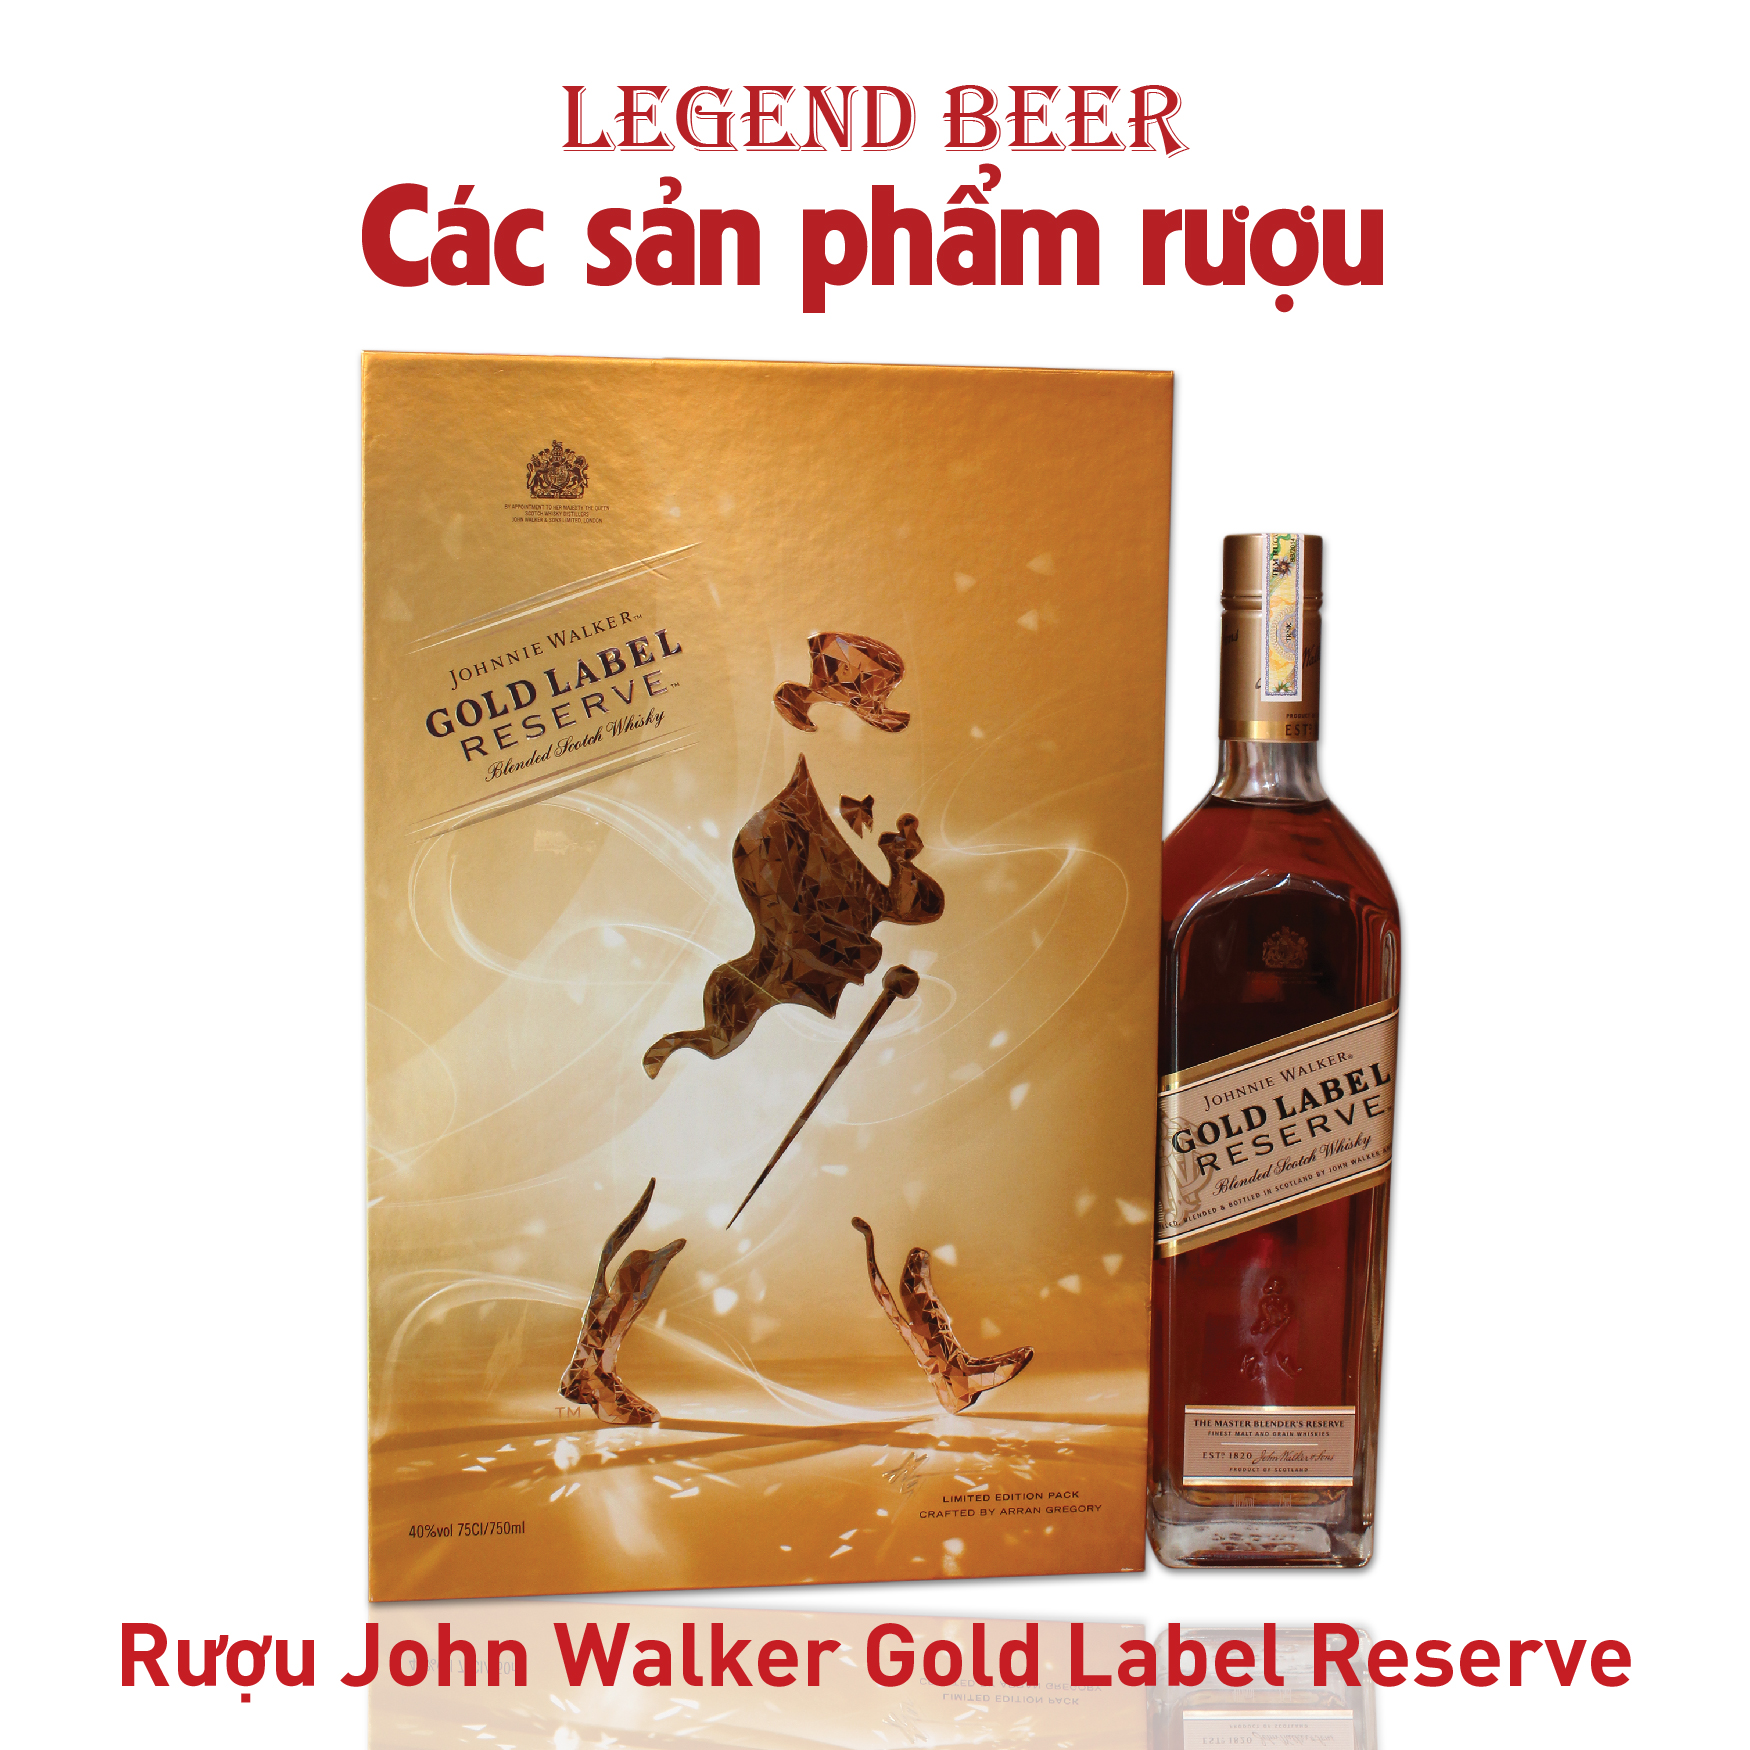 Rượu John Walker Gold Label Reserve